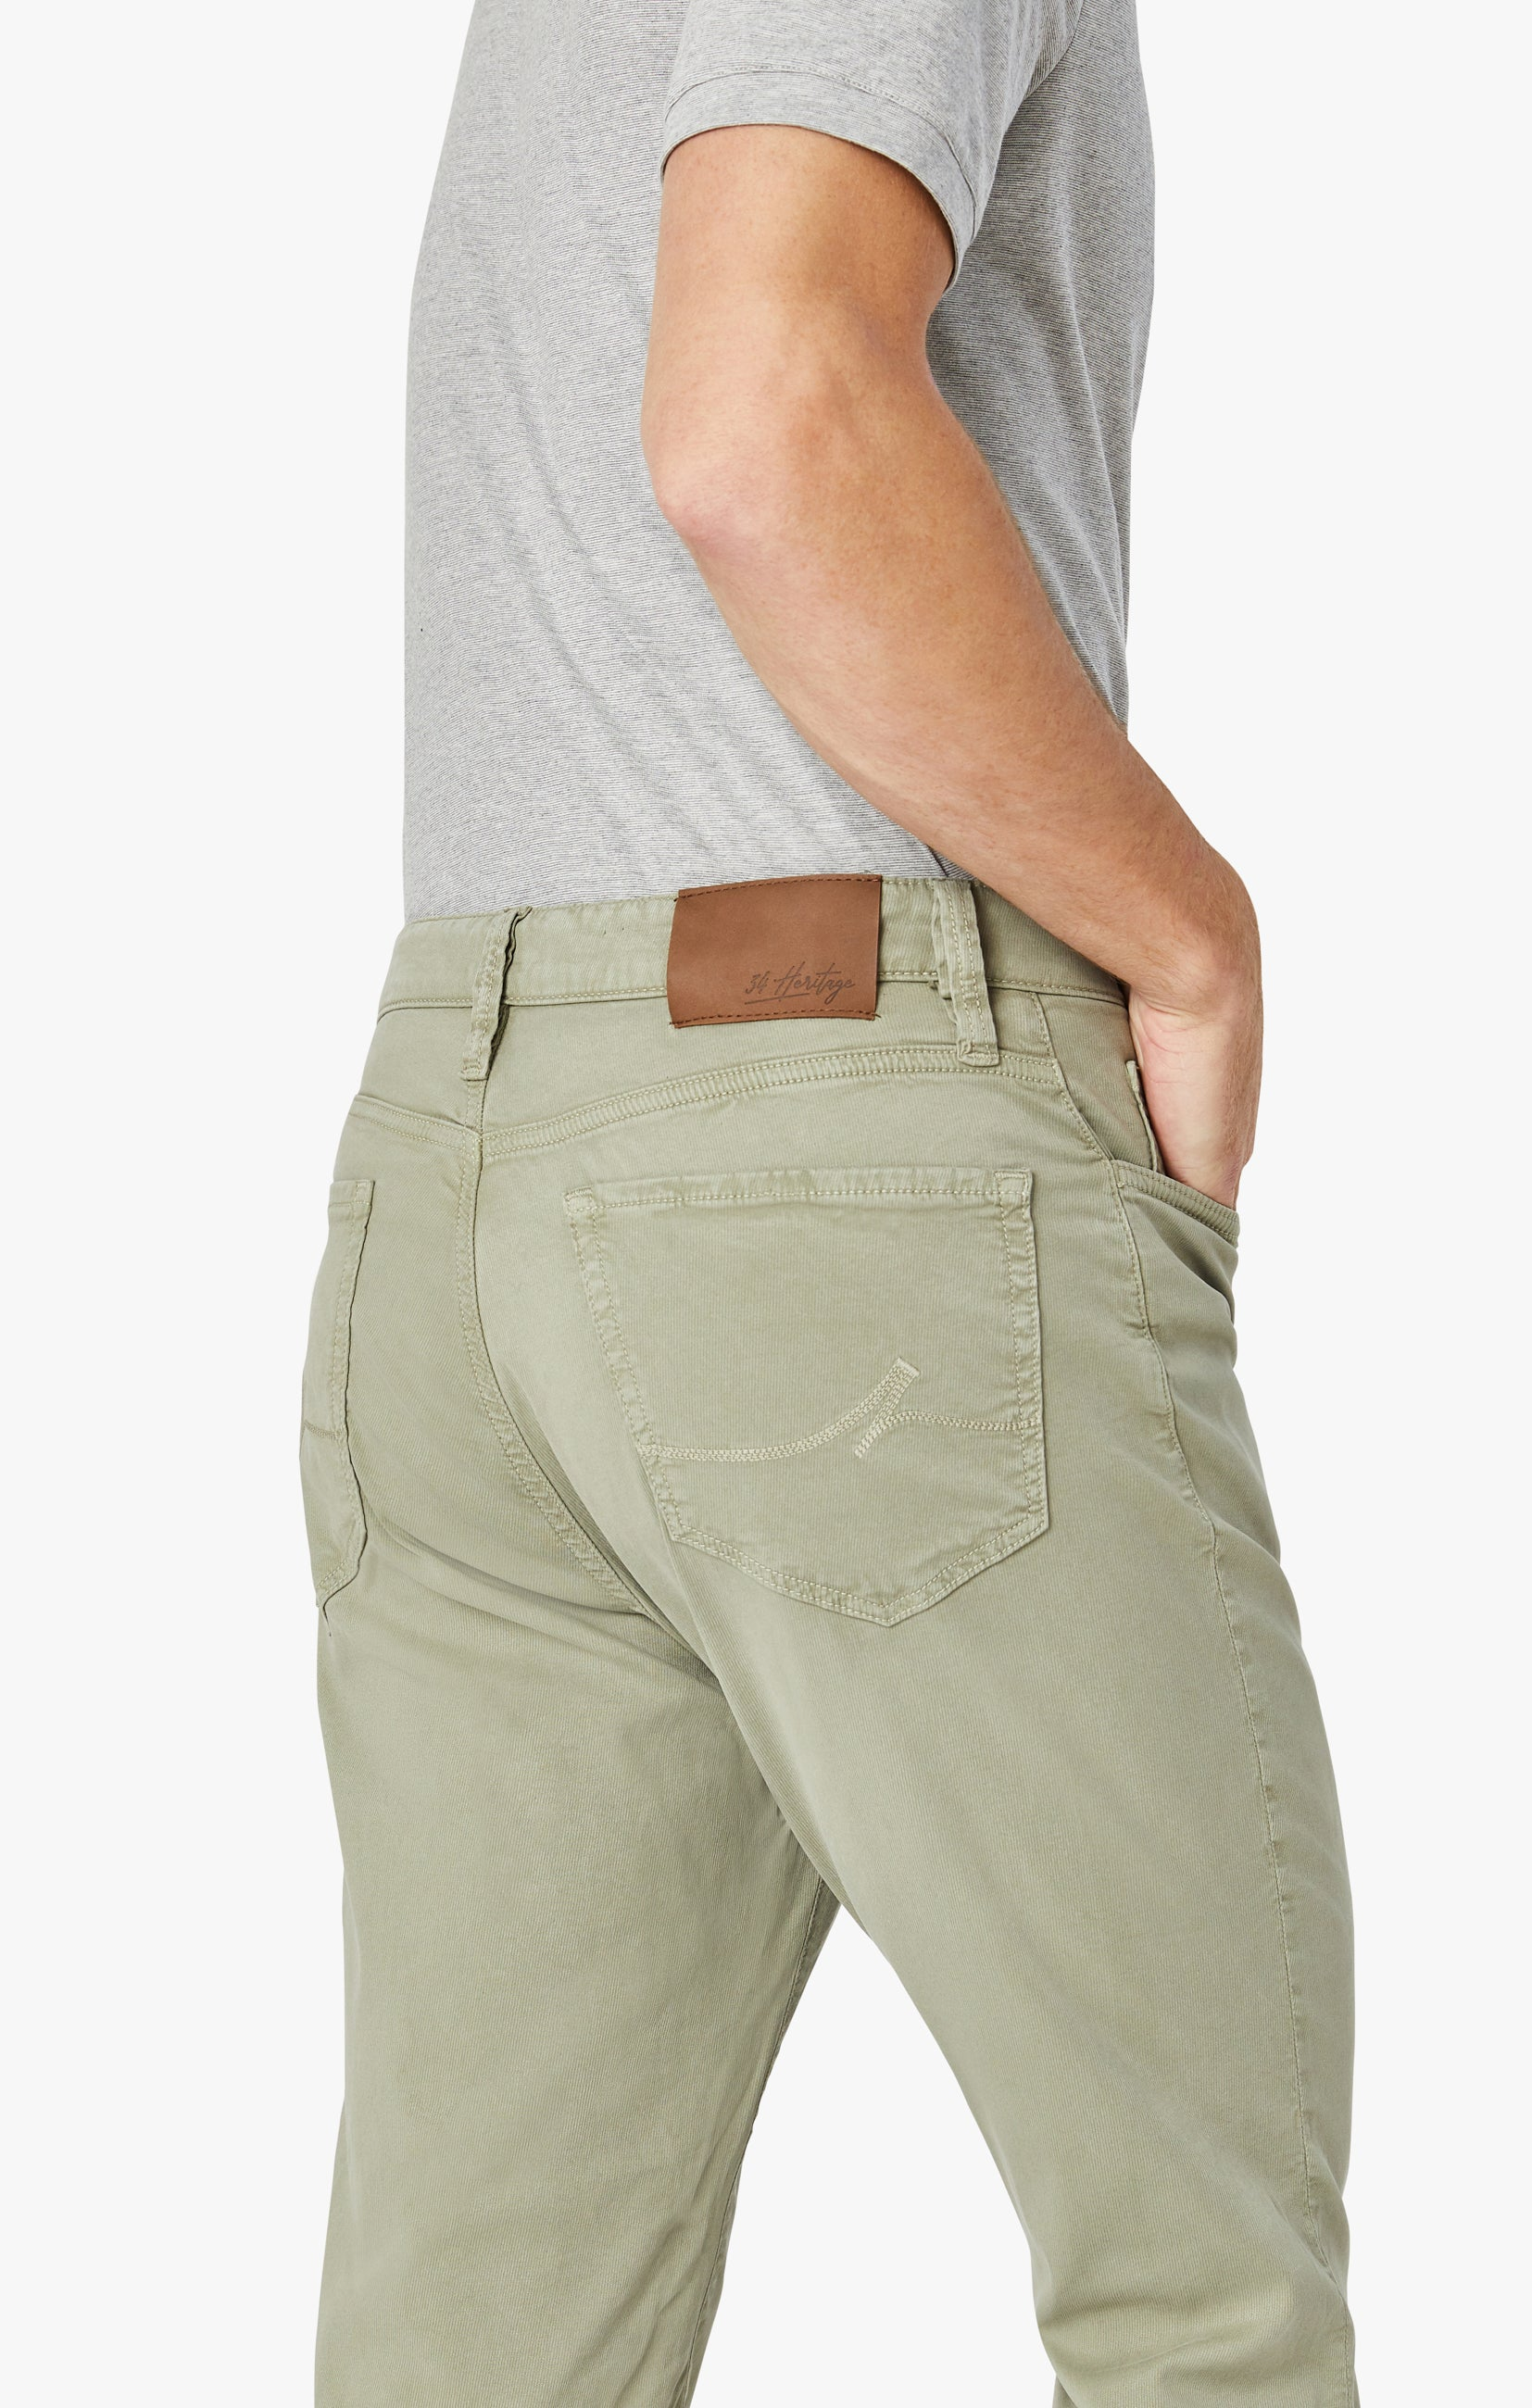 Charisma Relaxed Straight Pants In Sage Soft Touch Image 8